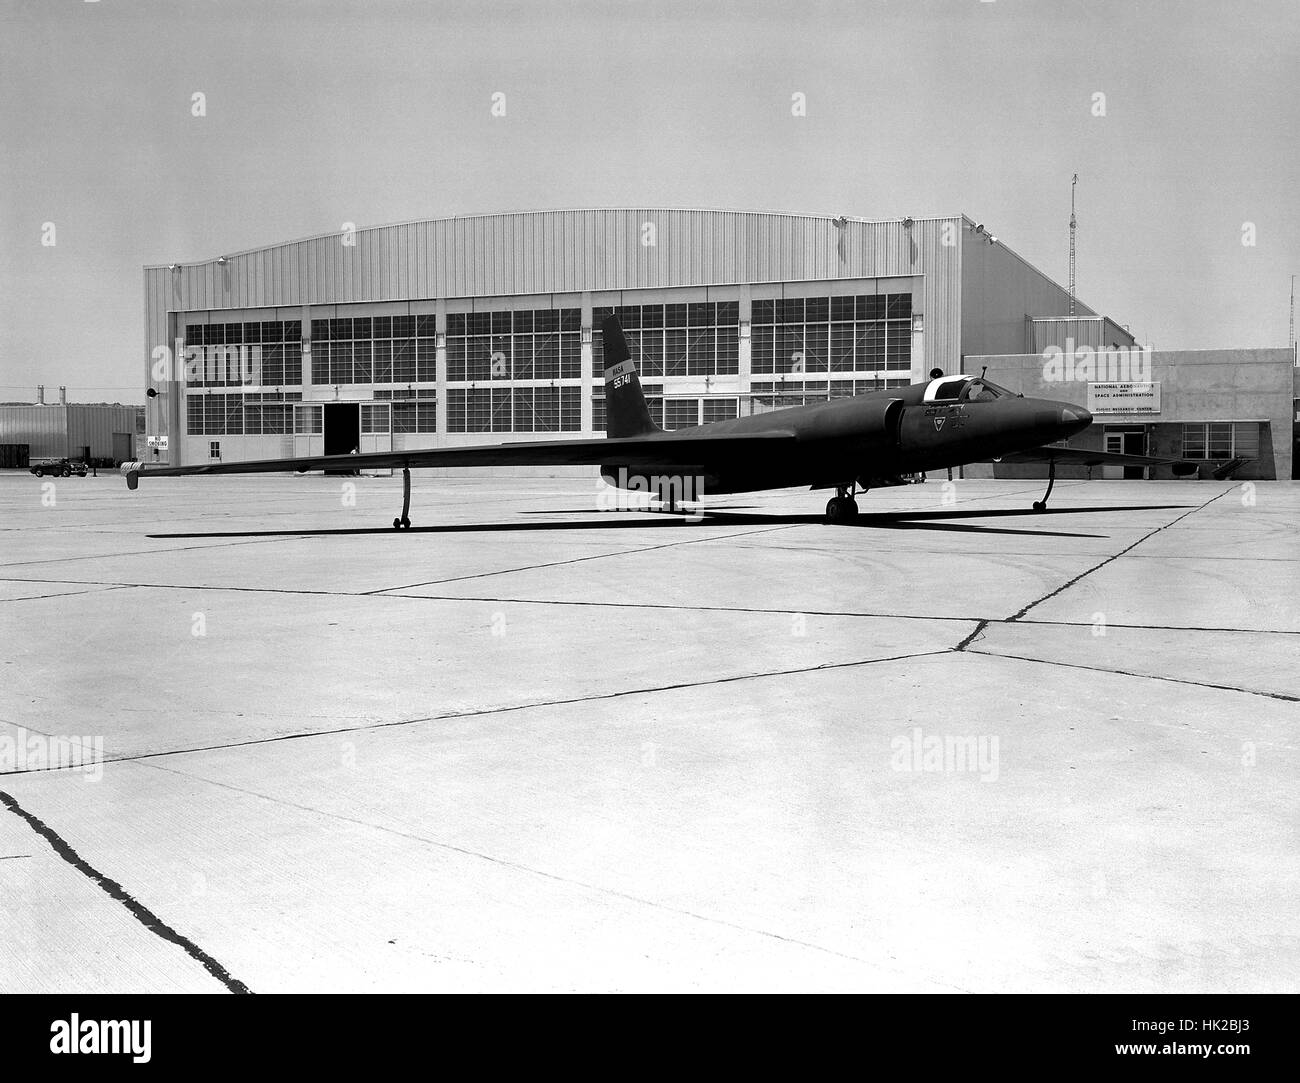 Old Hangar Building Black And White Stock Photos Amp Images